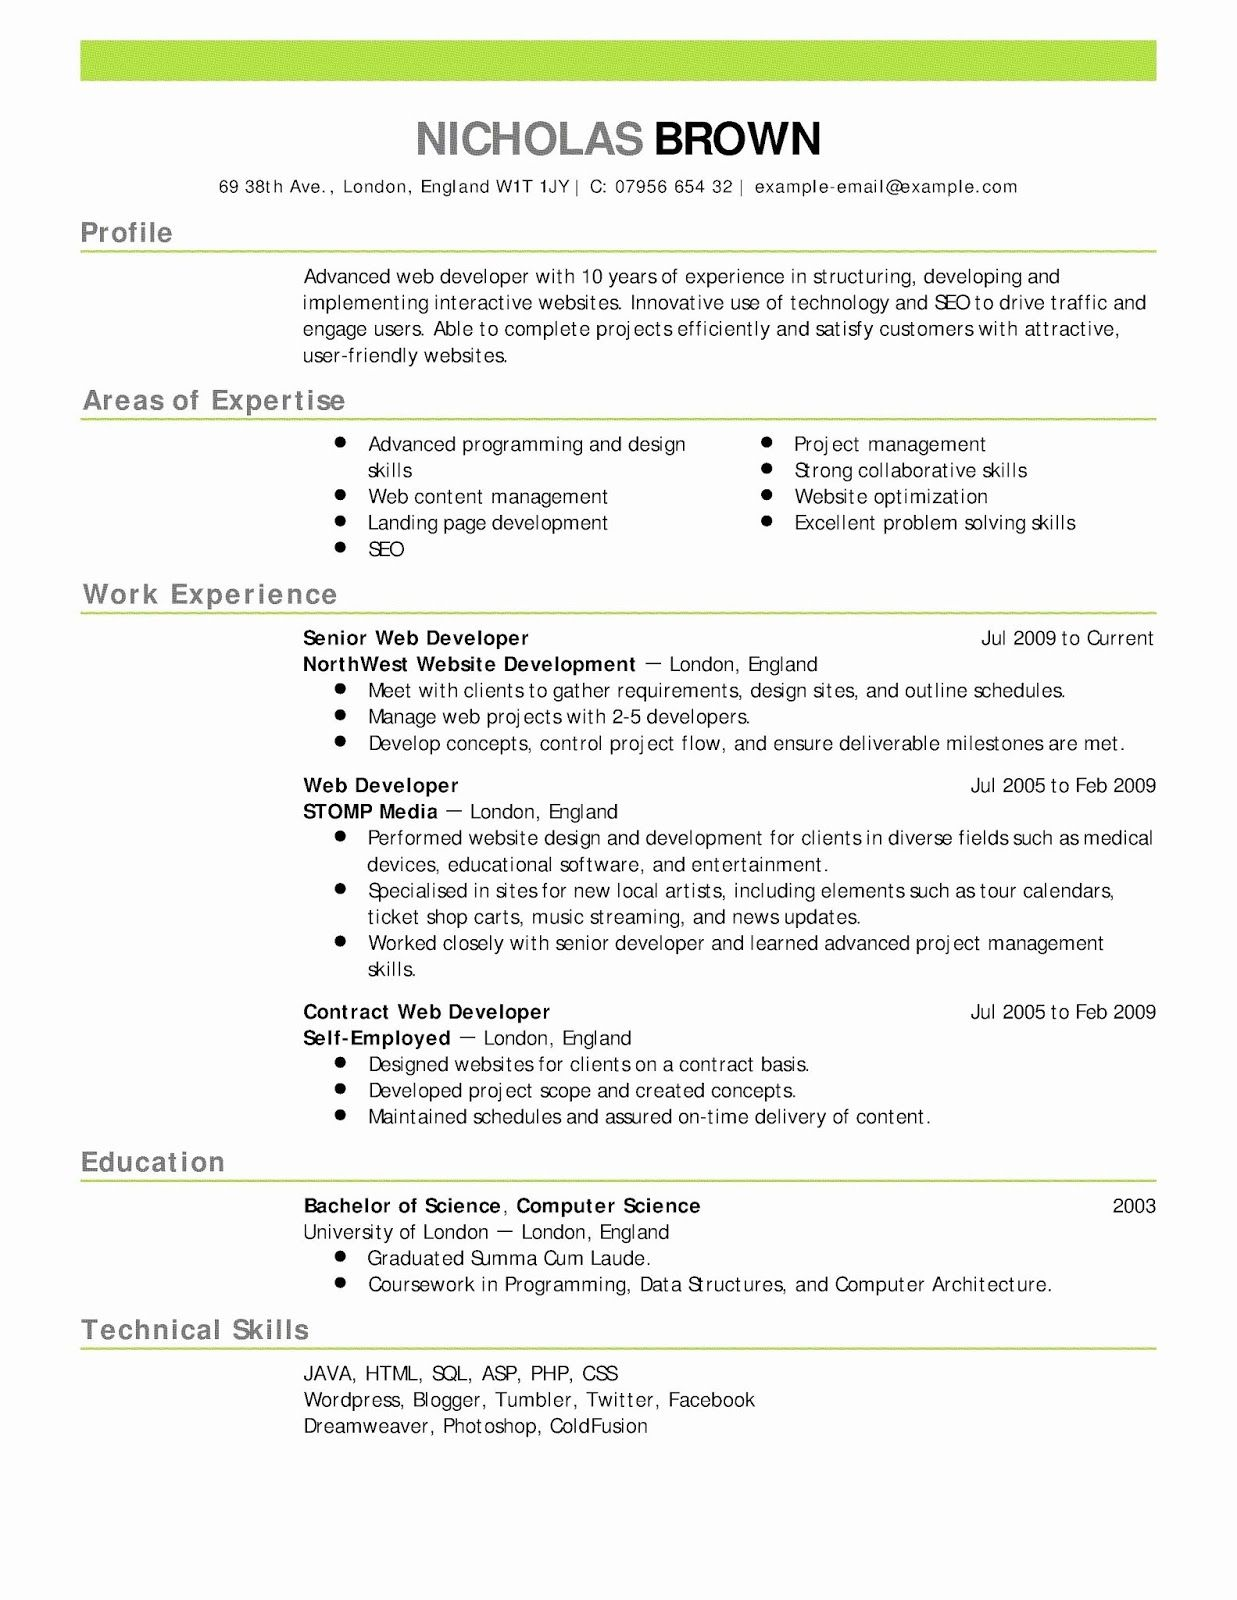 Bartending Resume Samples Bartender Resume Samples 2019 Bartending Resume Examples Australia 2020 Bartende Teaching Resume Resume Skills Project Manager Resume